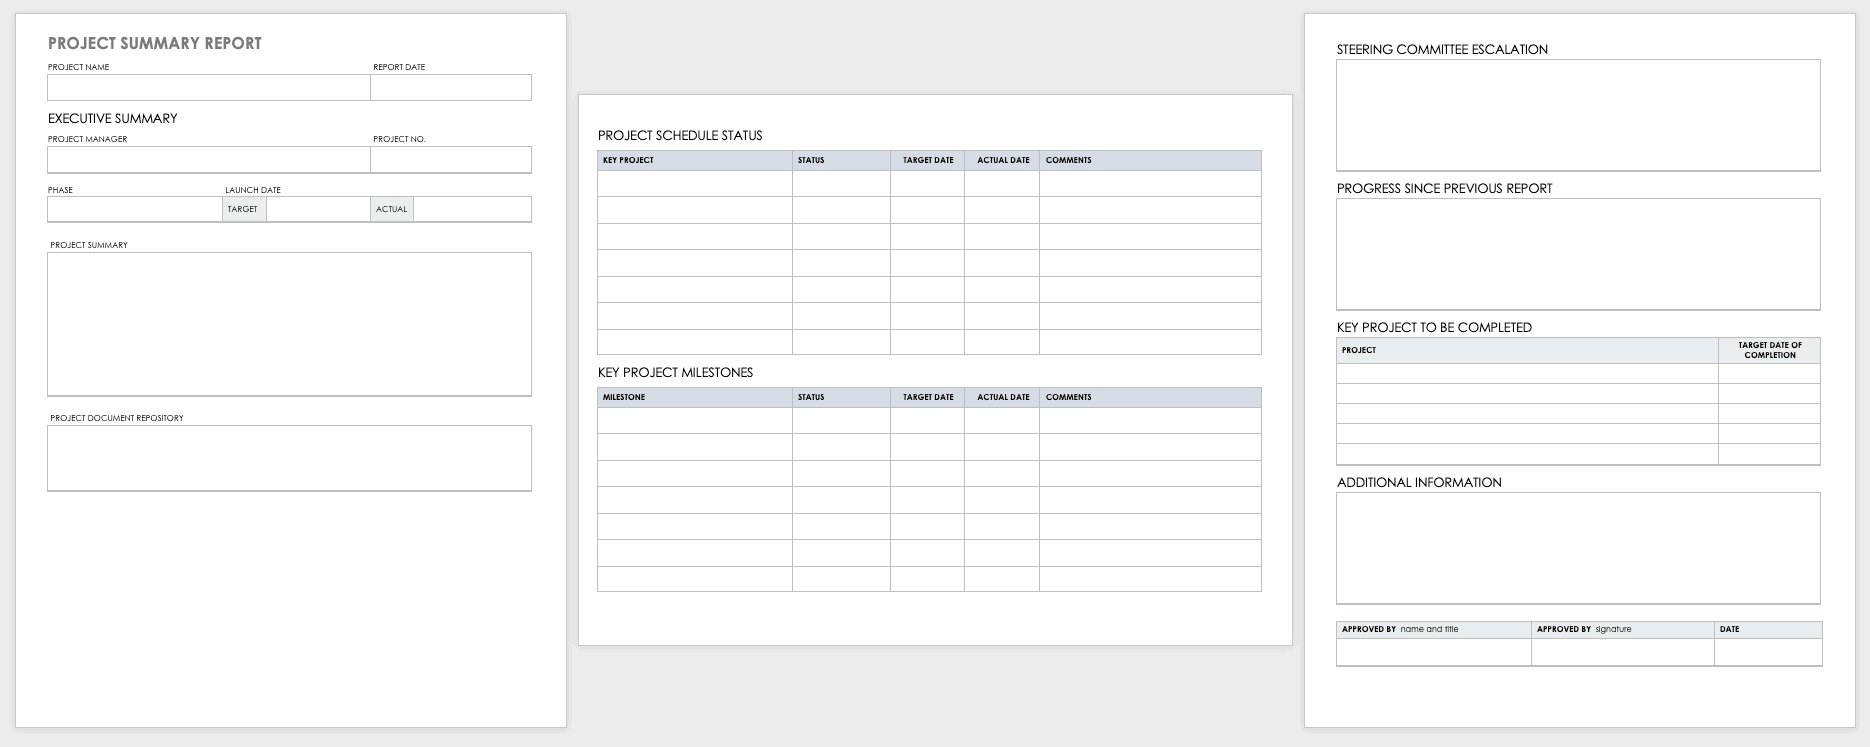 003 Beautiful Project Report Template Word Concept  Statu Free Download 2013Full